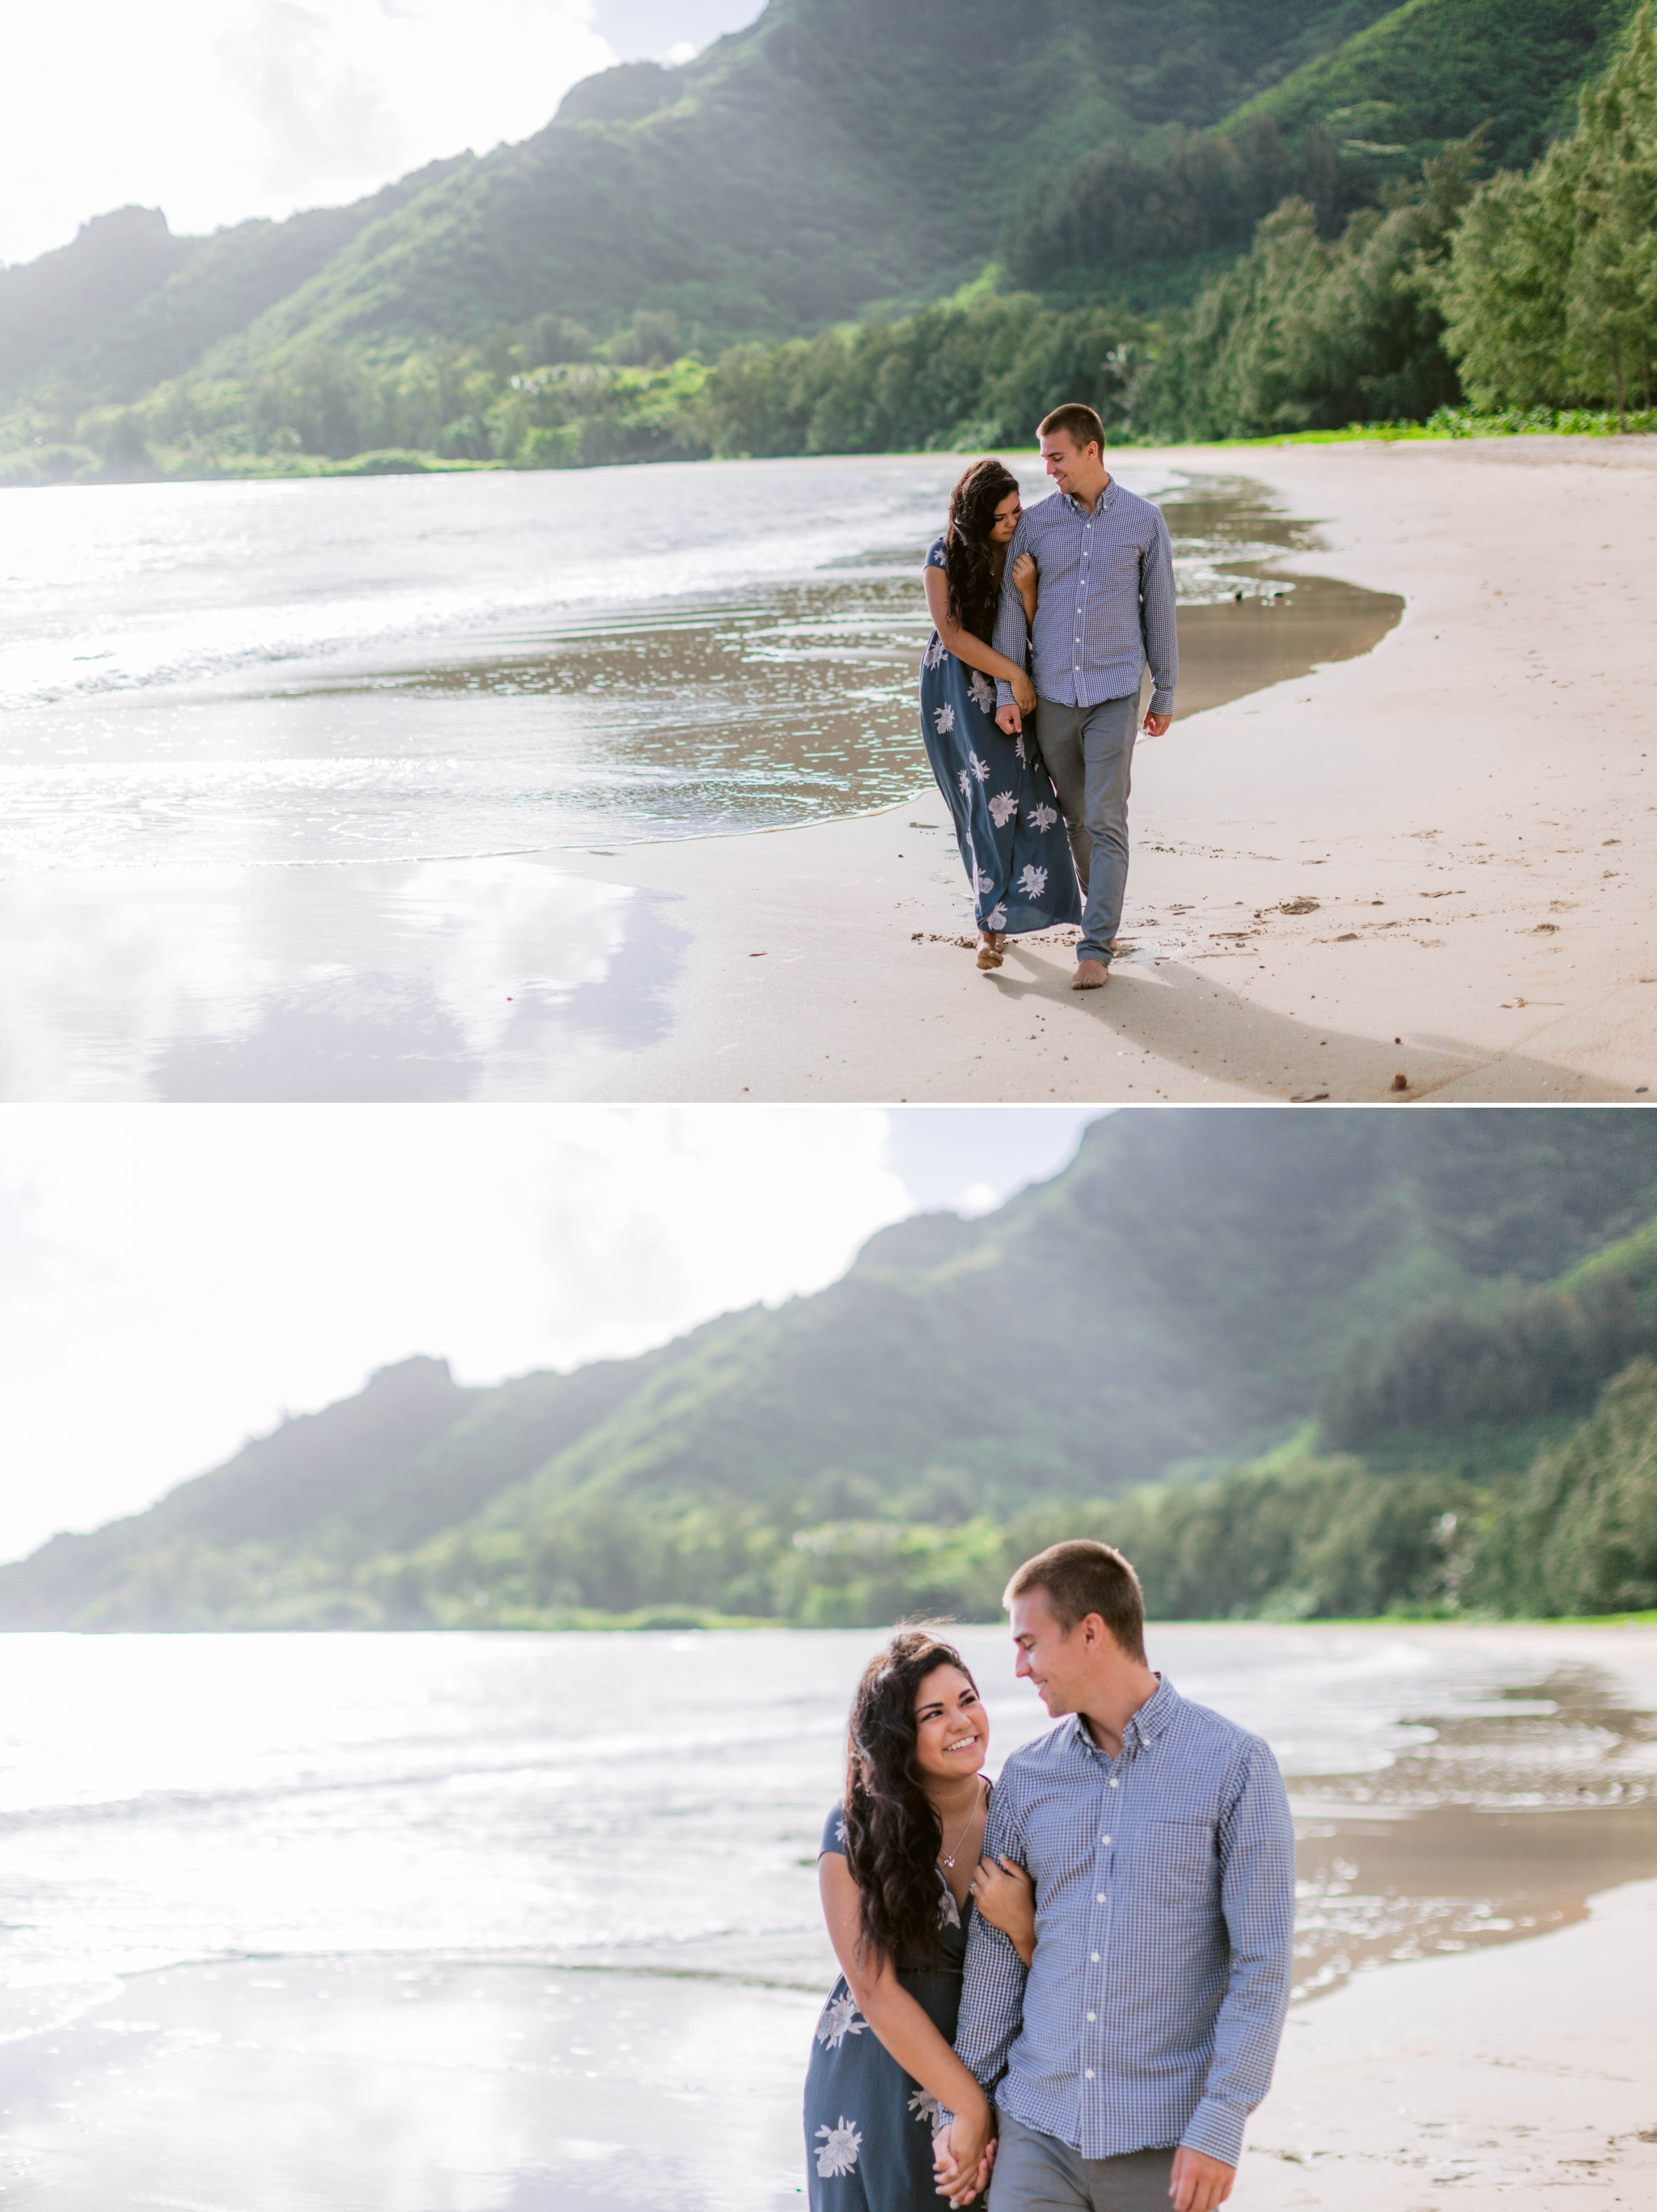 Couple Walking on the beach - Rilee + Max - Beach Engagement Session at Kahana Bay in Kaaawa, HI - Oahu Hawaii Wedding Photographer - #hawaiiengagementphotographer #oahuengagementphotographer